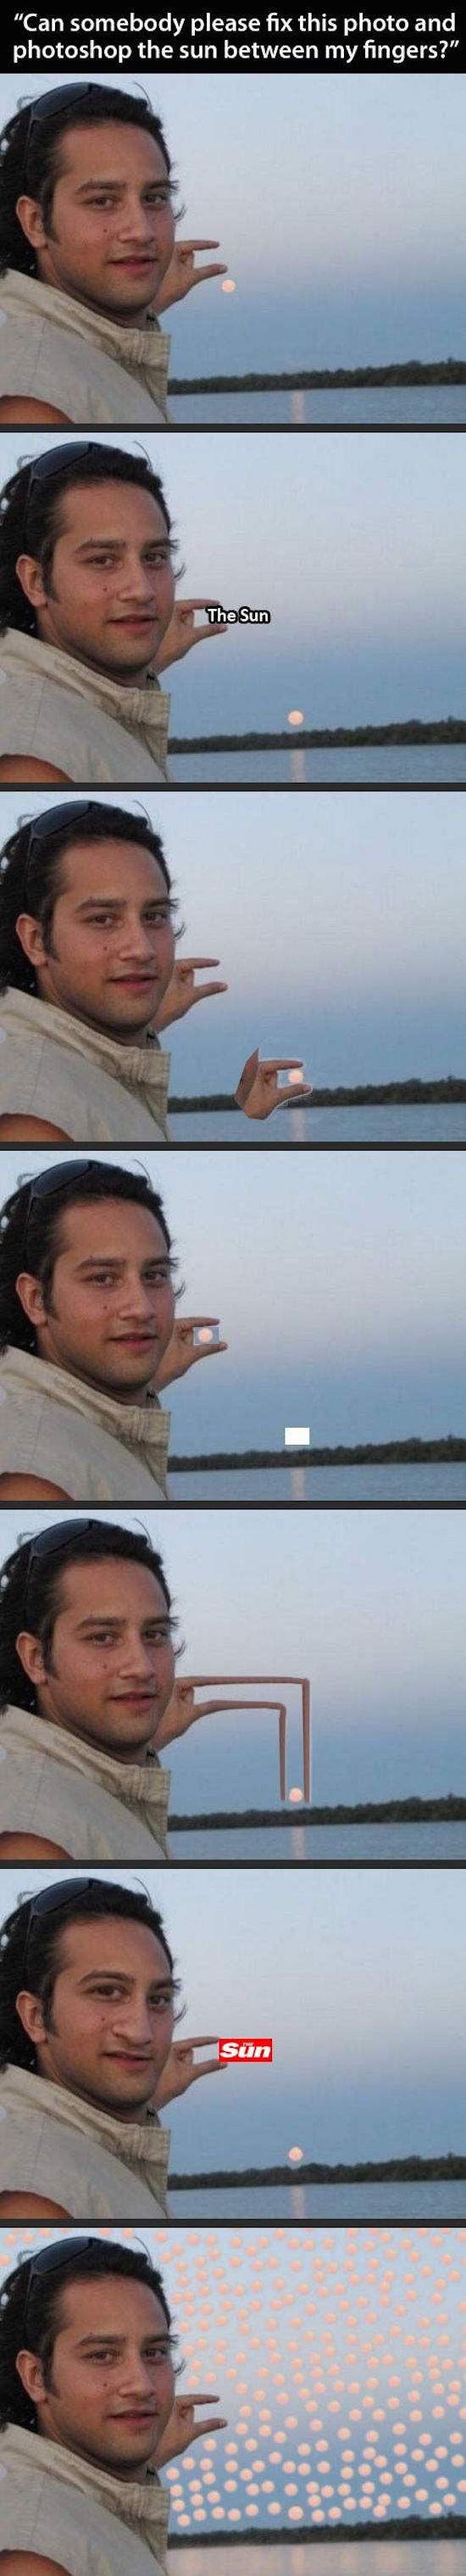 funny pictures of guy who asked someone to photoshop the sun between his fingers